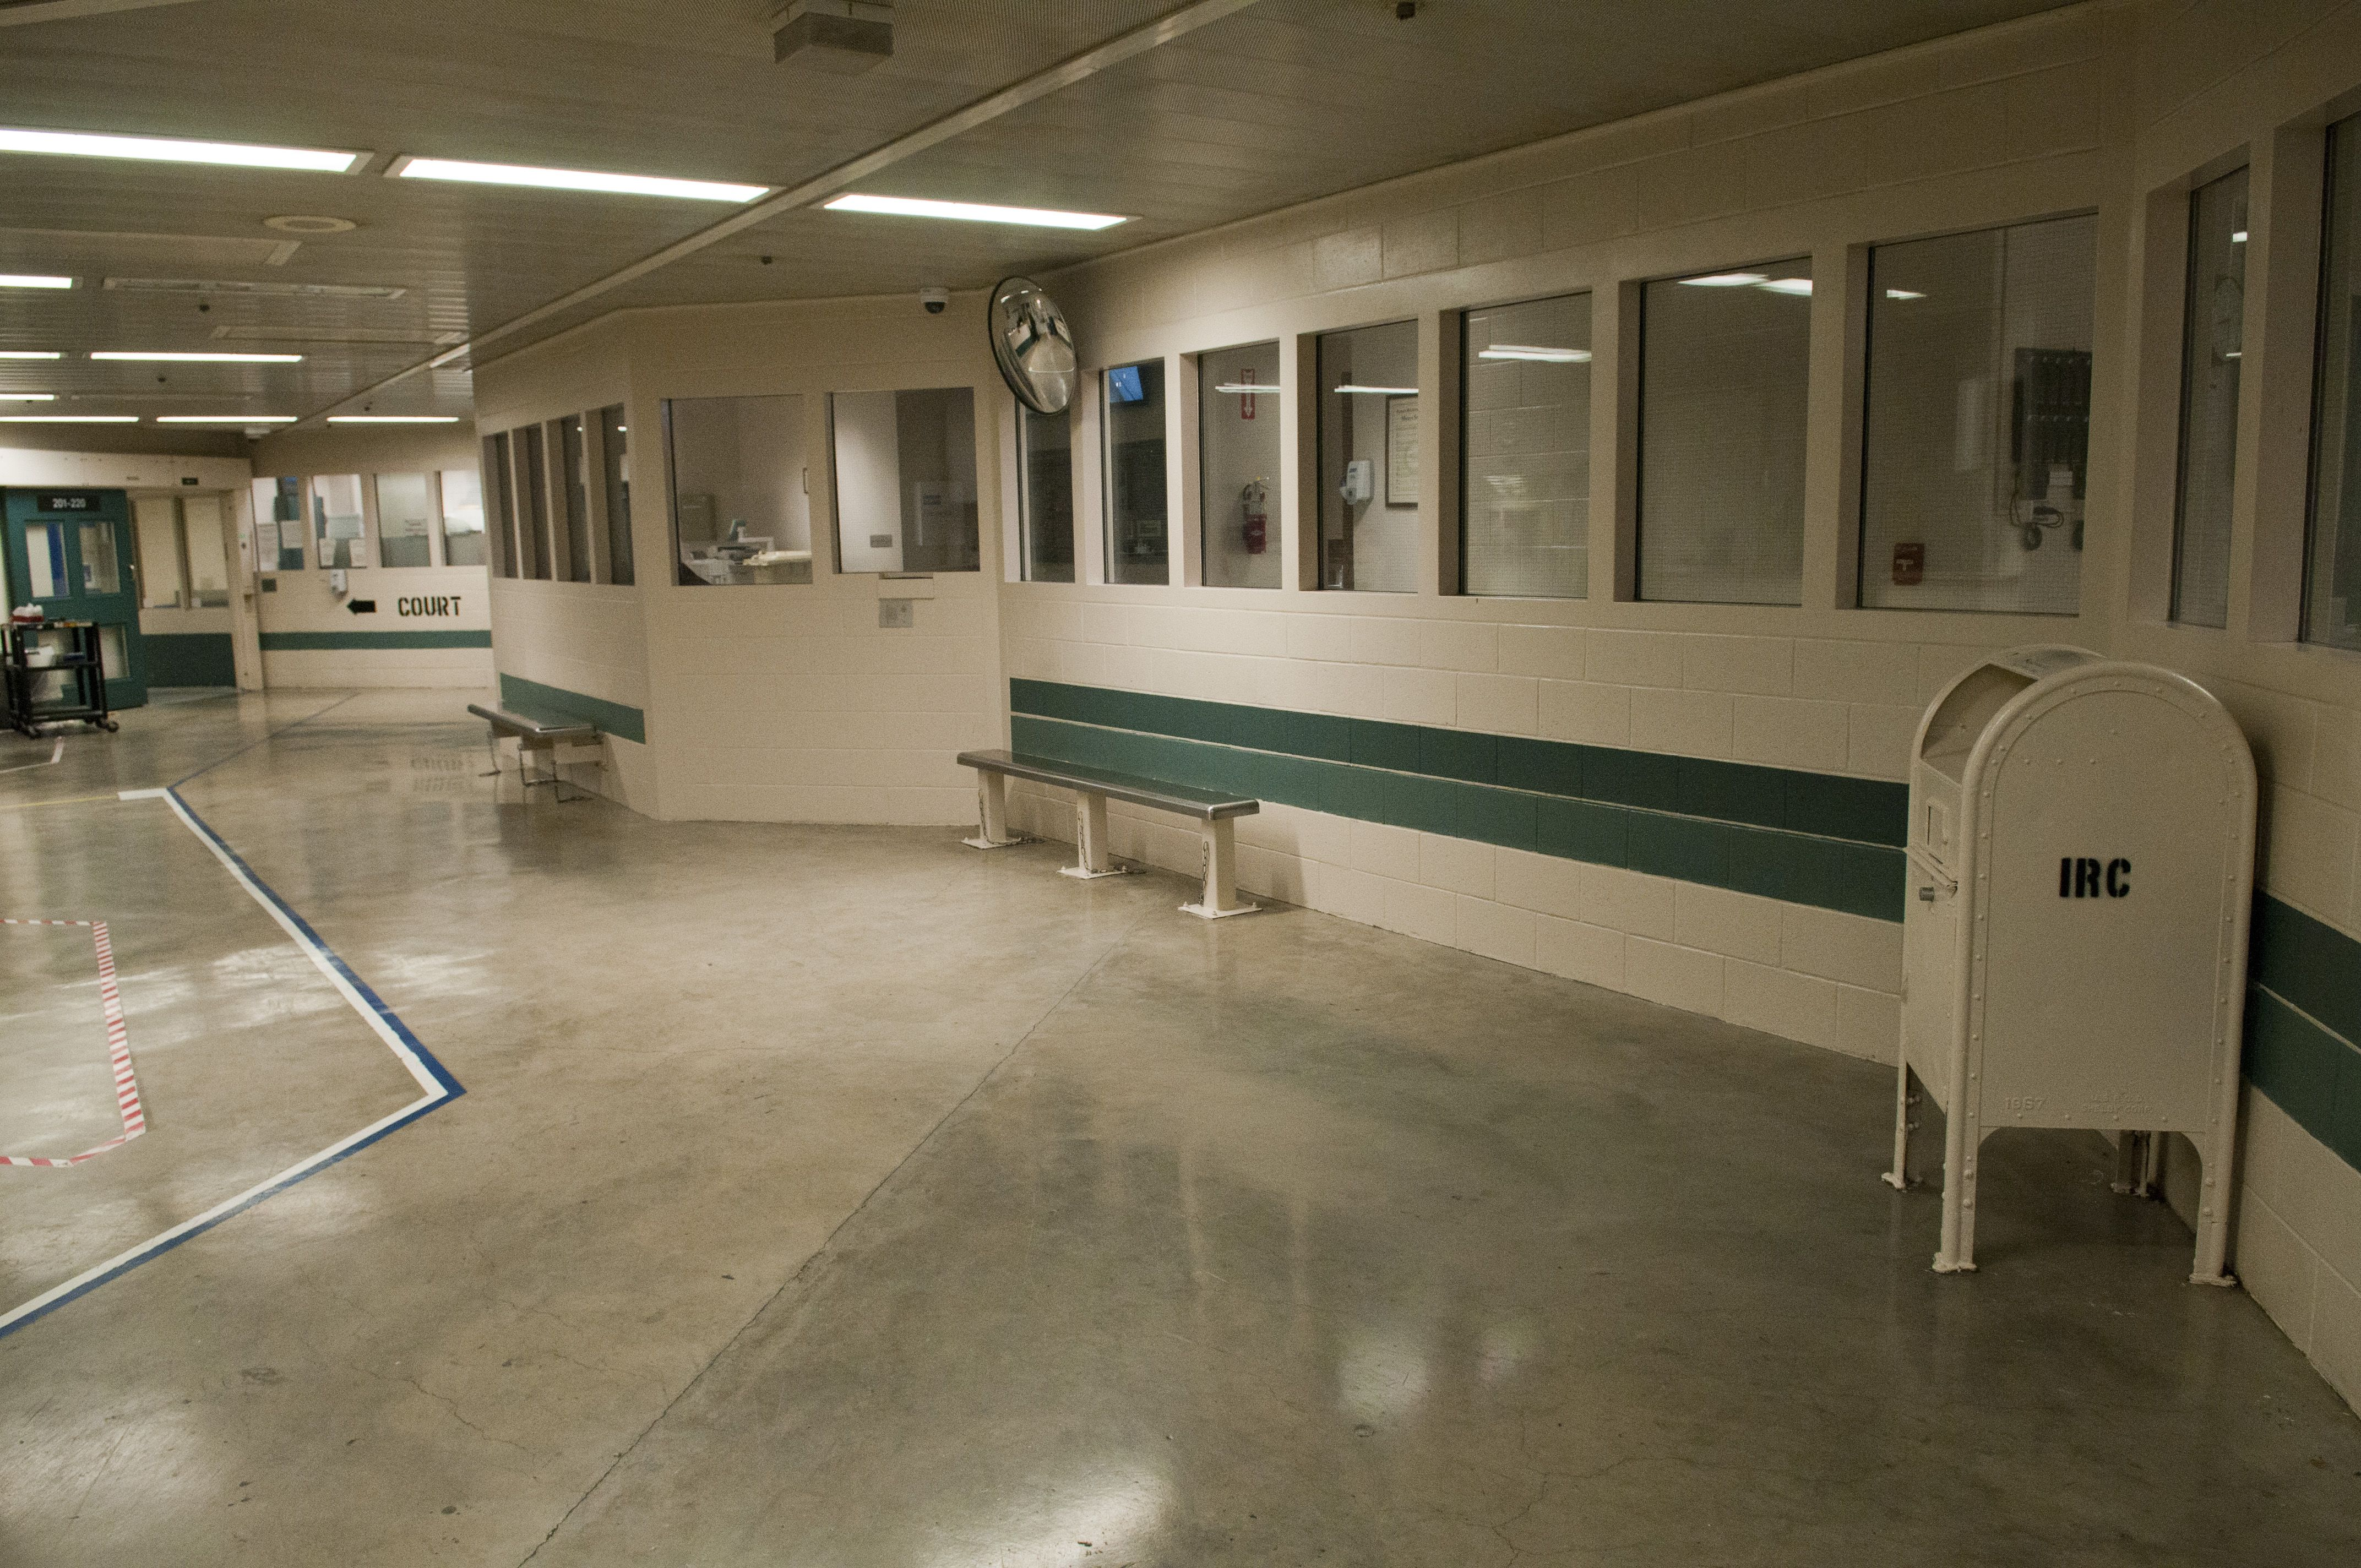 Inmate Reception Center Irc Holding Area La County